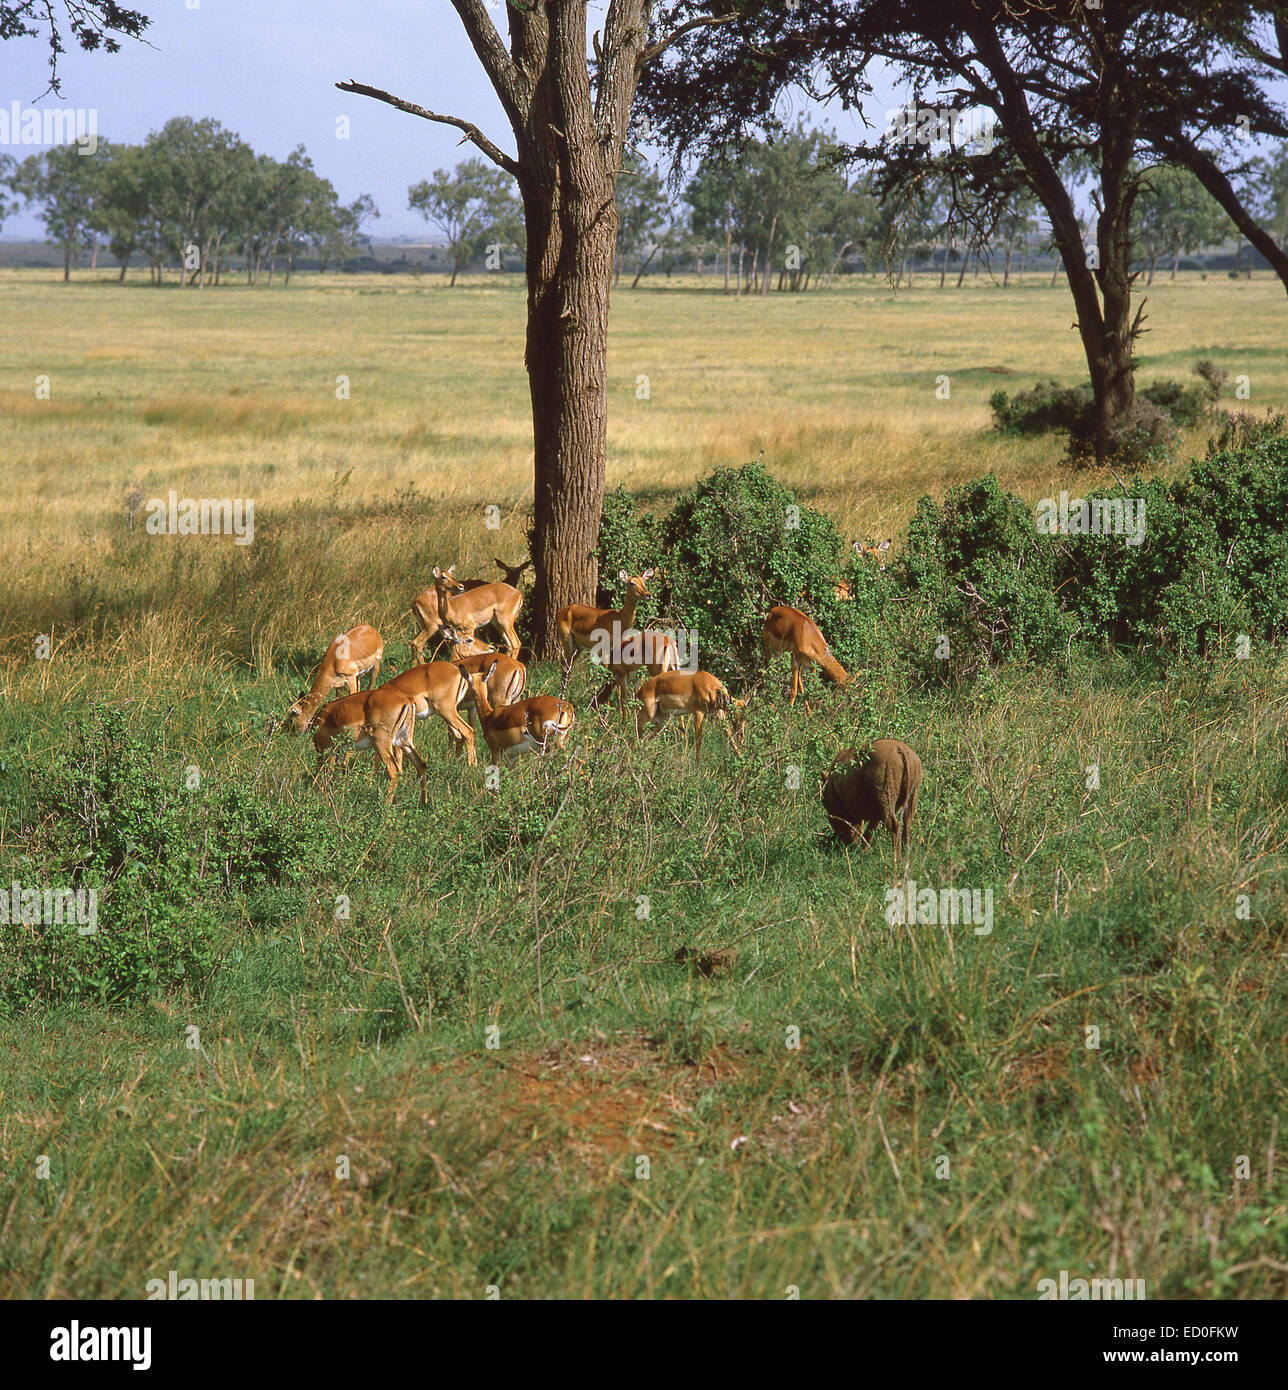 Herd of Impalas and a wild boar in bush, Amboseli National Park, Rift Valley Province, Kenya - Stock Image